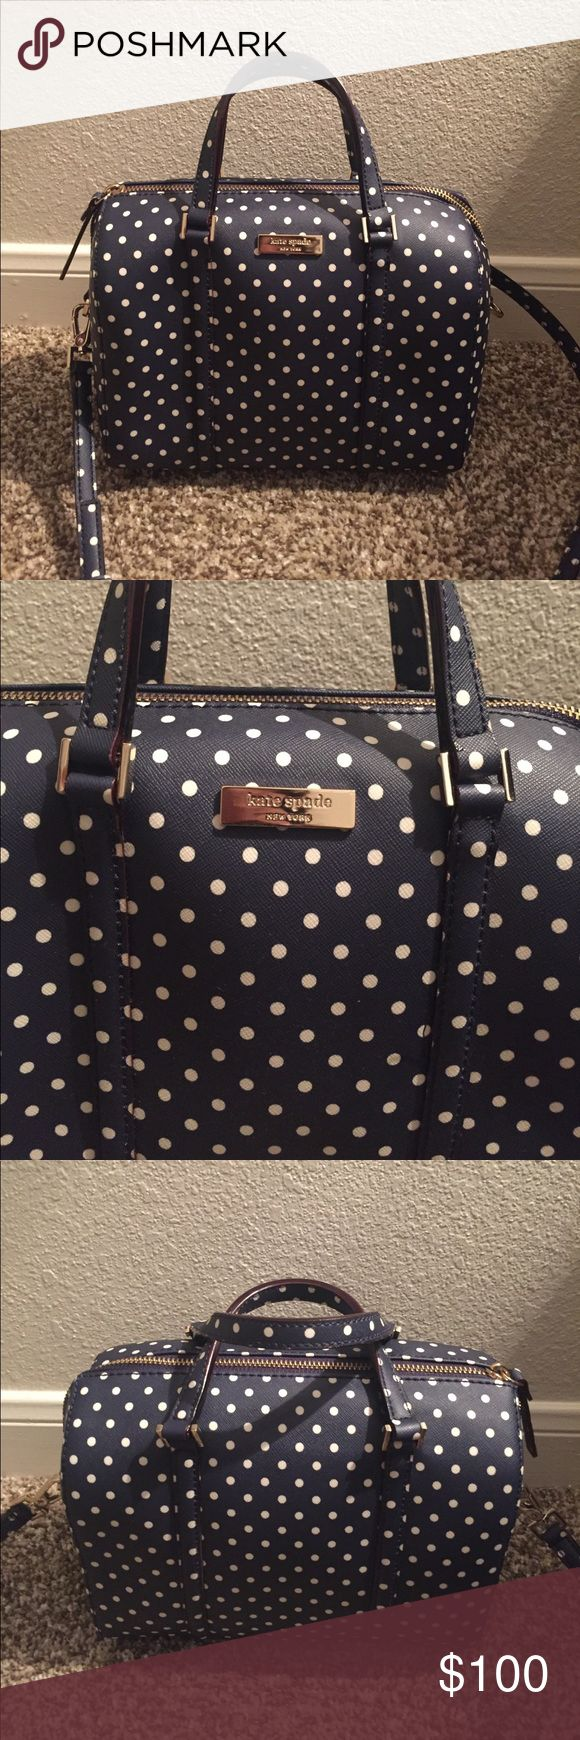 Kate Spade Polka Dot Purse Navy blue with white polka dots. Excellent condition! kate spade Bags Shoulder Bags